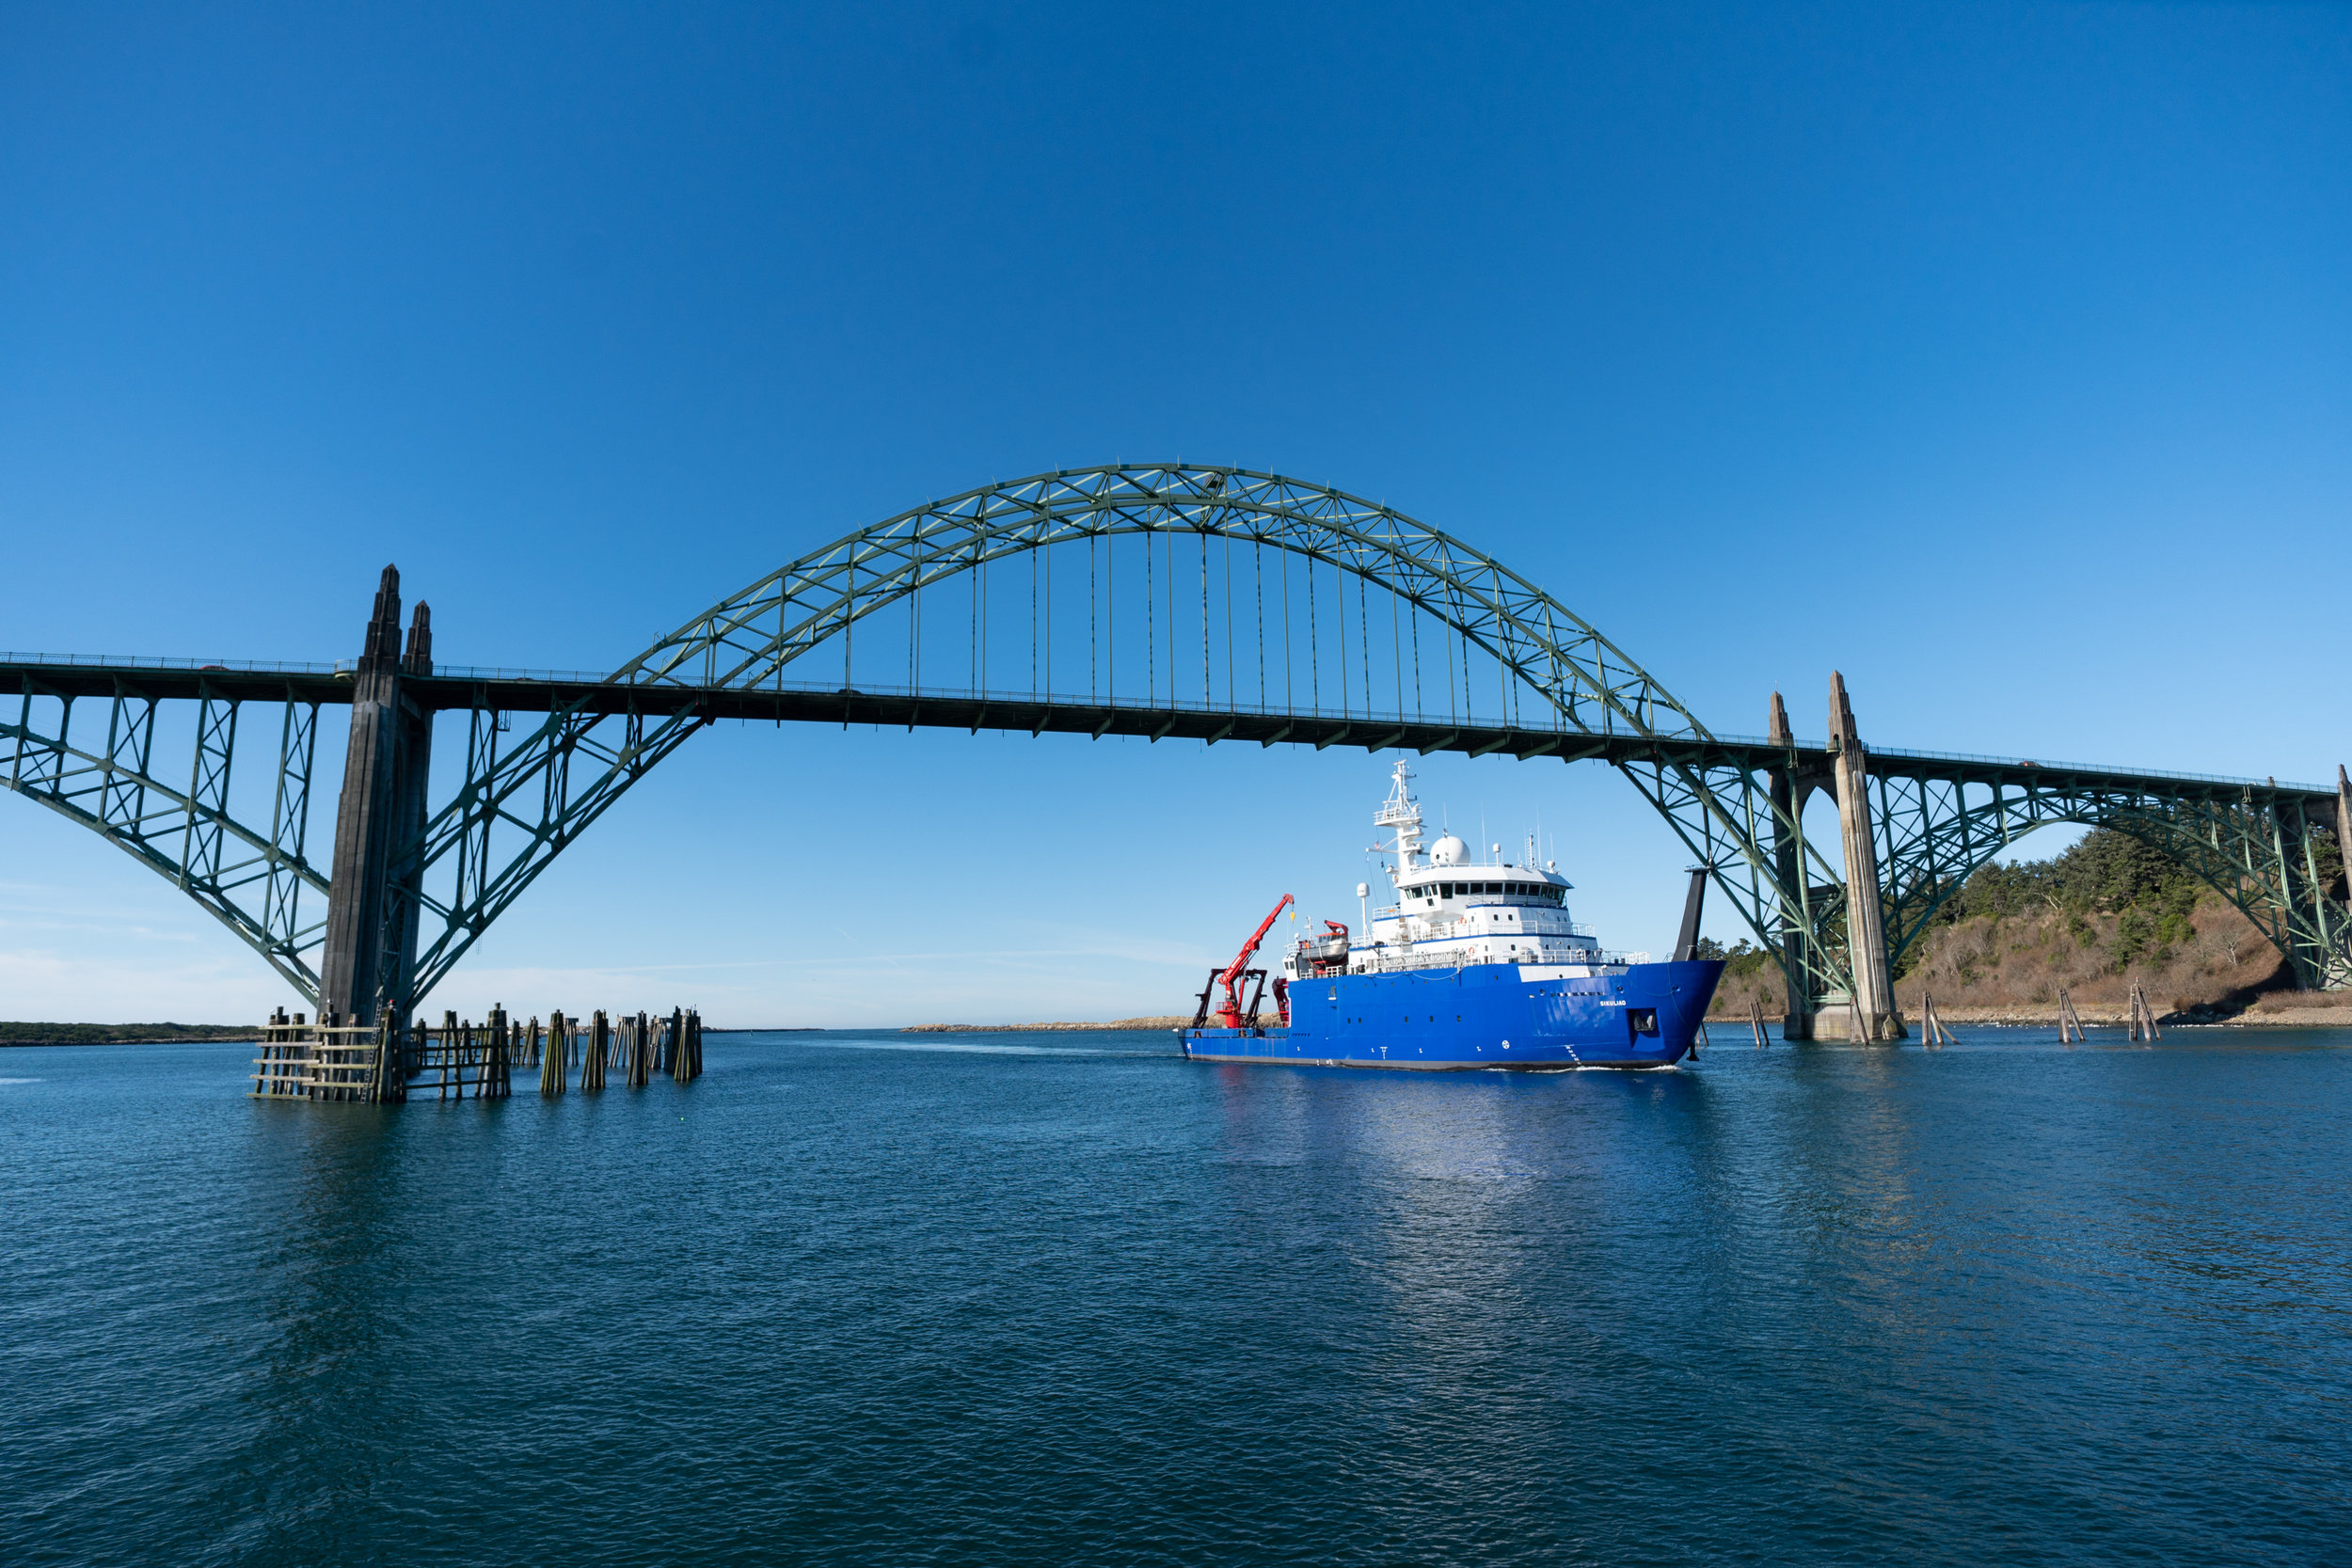 Home for a while - The R/V Sikuliaq sailing into Newport, OR    Photo by Mark Farley at the Hatfield Marine Science Center